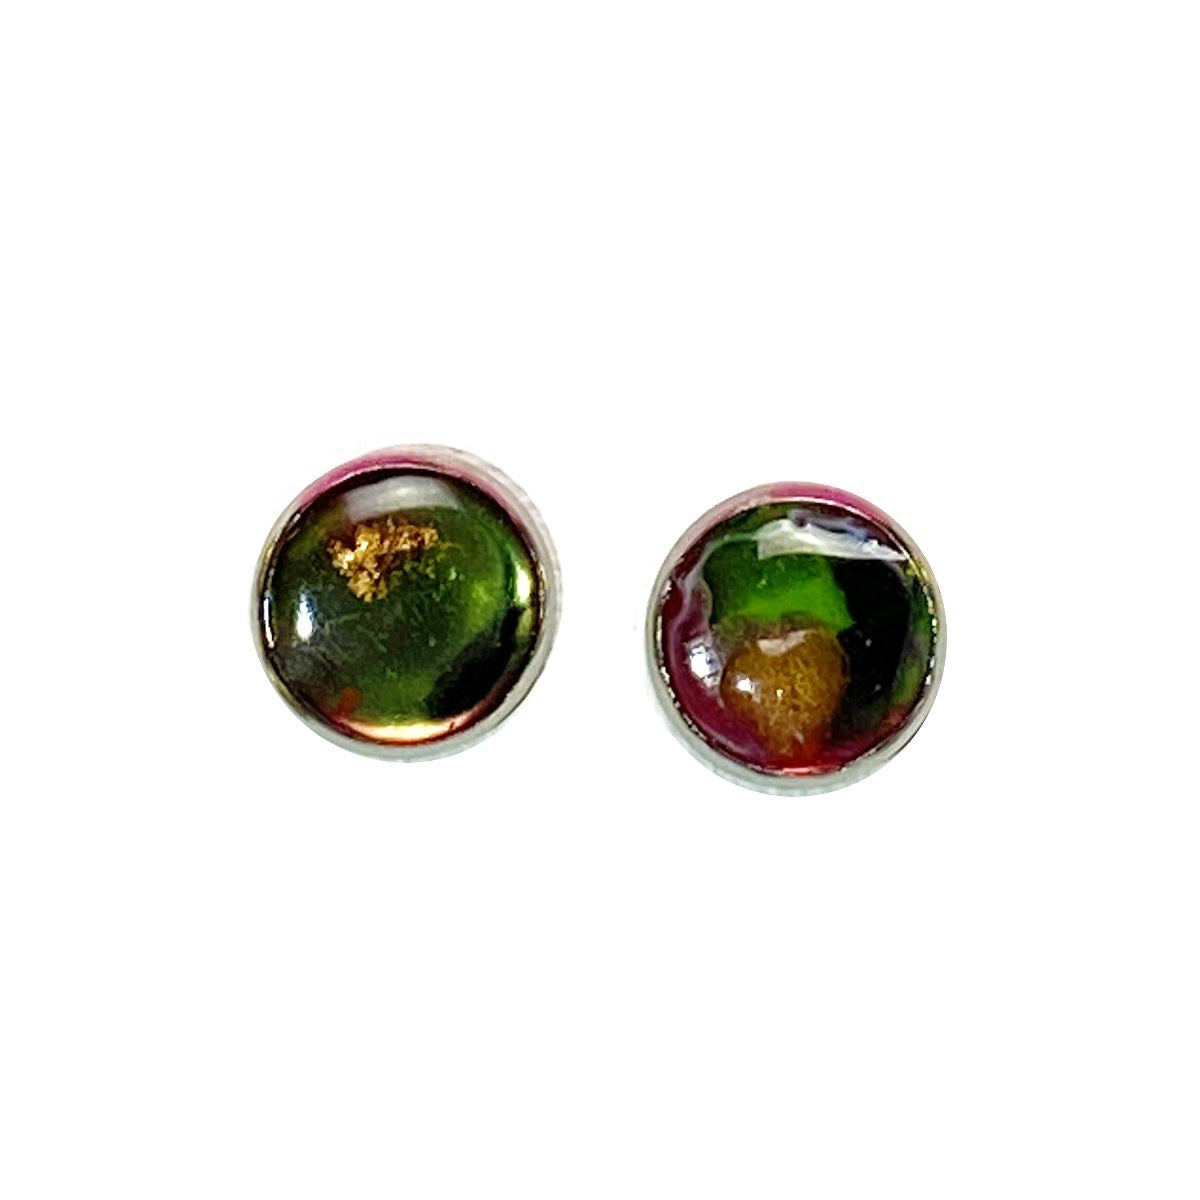 Color Study - pink green black gold 12mm stud earrings Deanna Dot Store